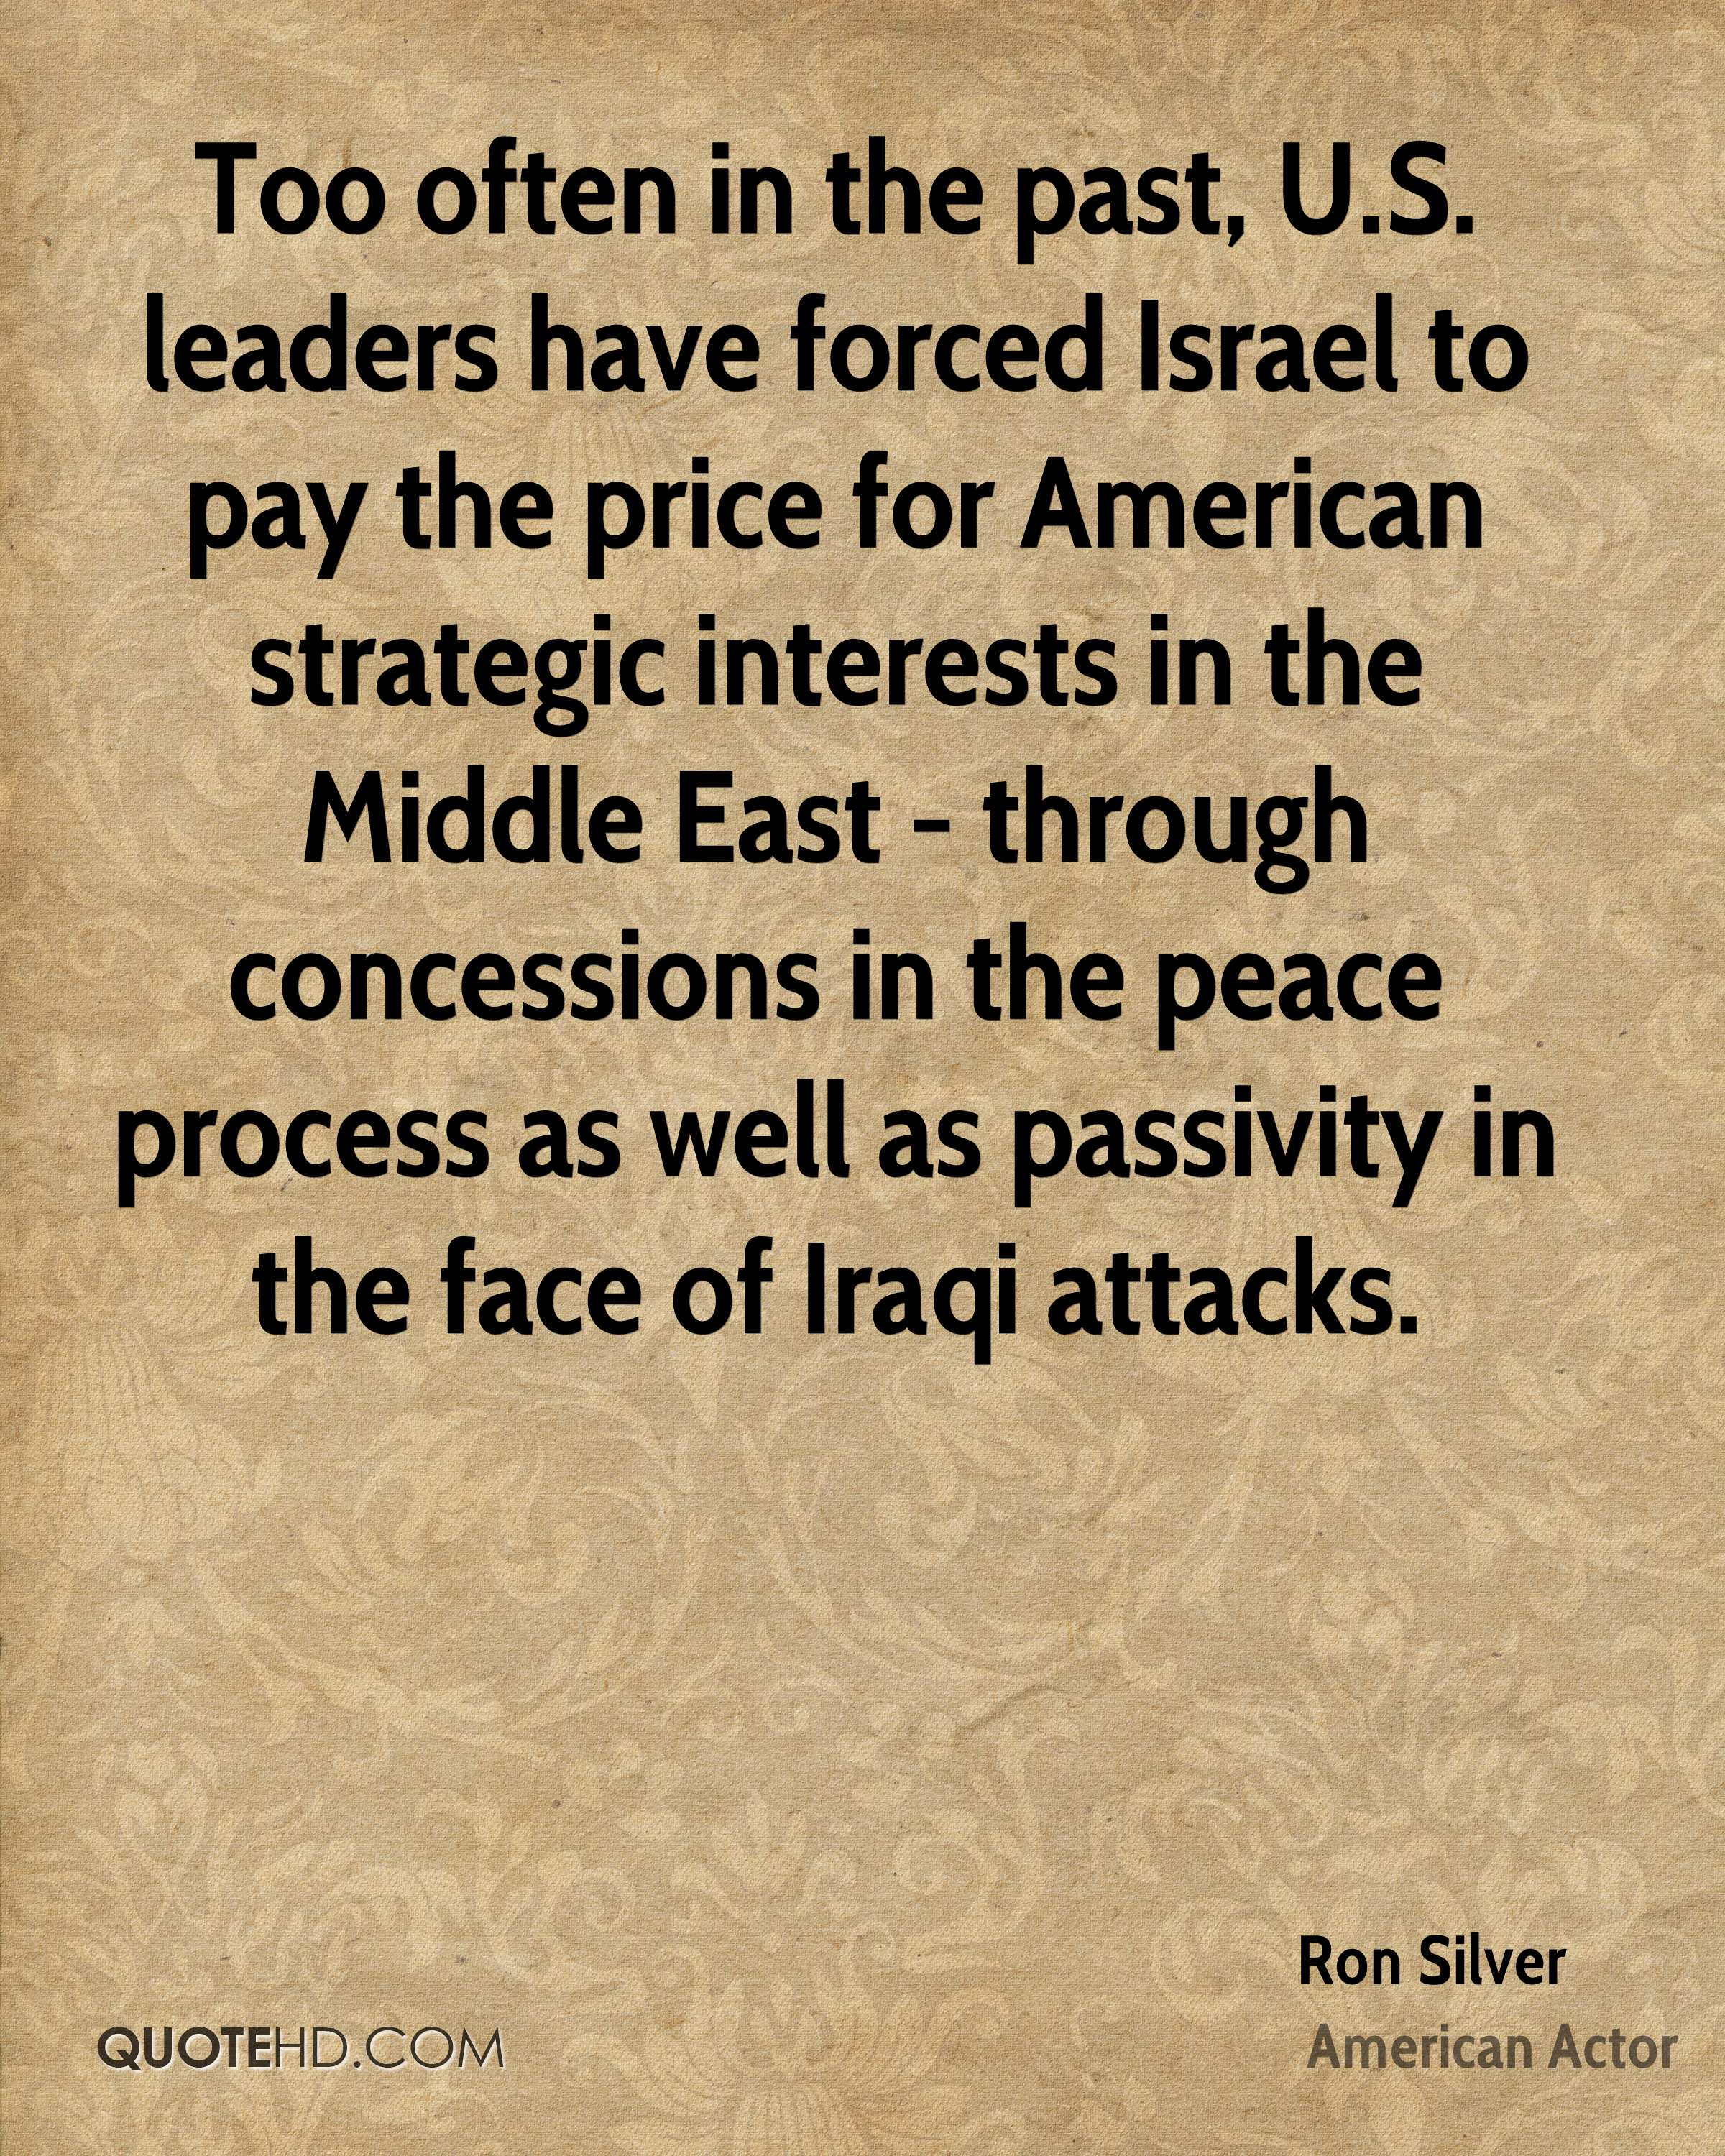 Too often in the past, U.S. leaders have forced Israel to pay the price for American strategic interests in the Middle East - through concessions in the peace process as well as passivity in the face of Iraqi attacks.